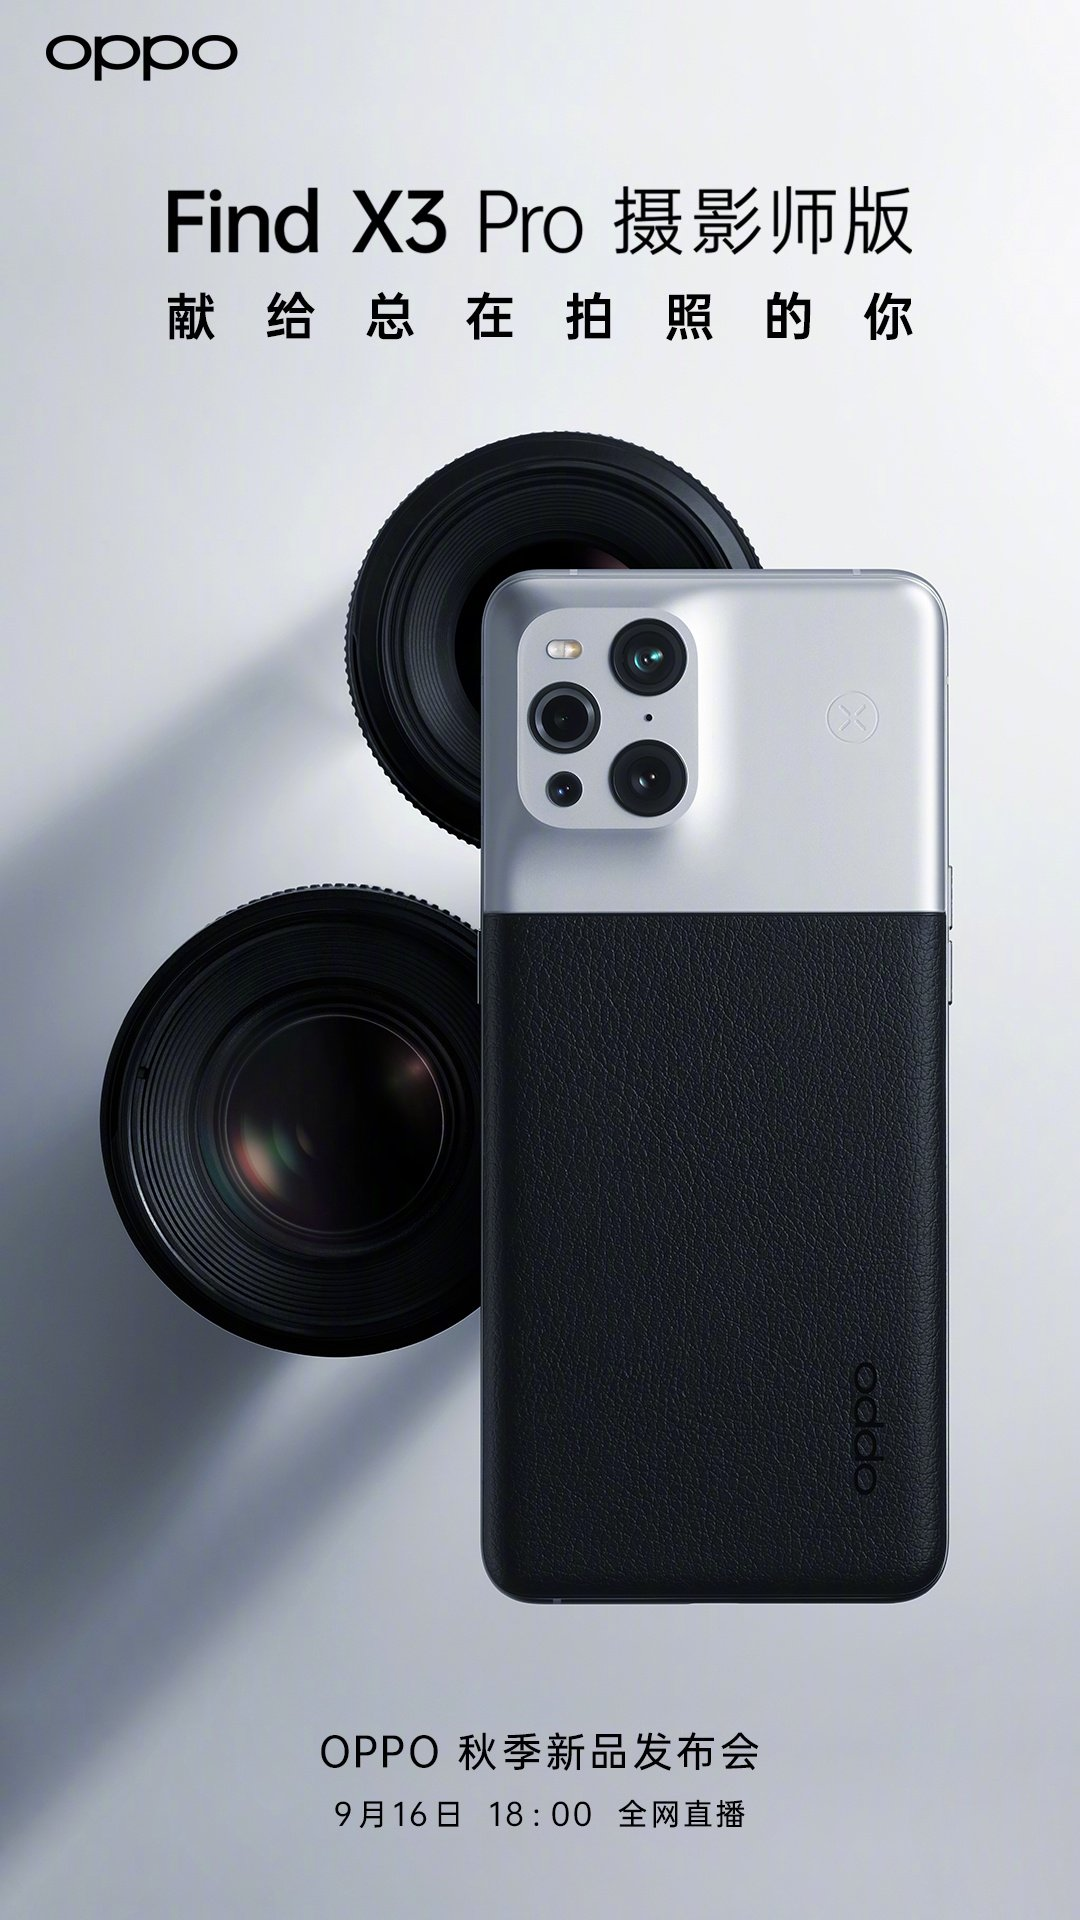 Oppo Find X3 Pro Photographer Edition is Launching on September 16